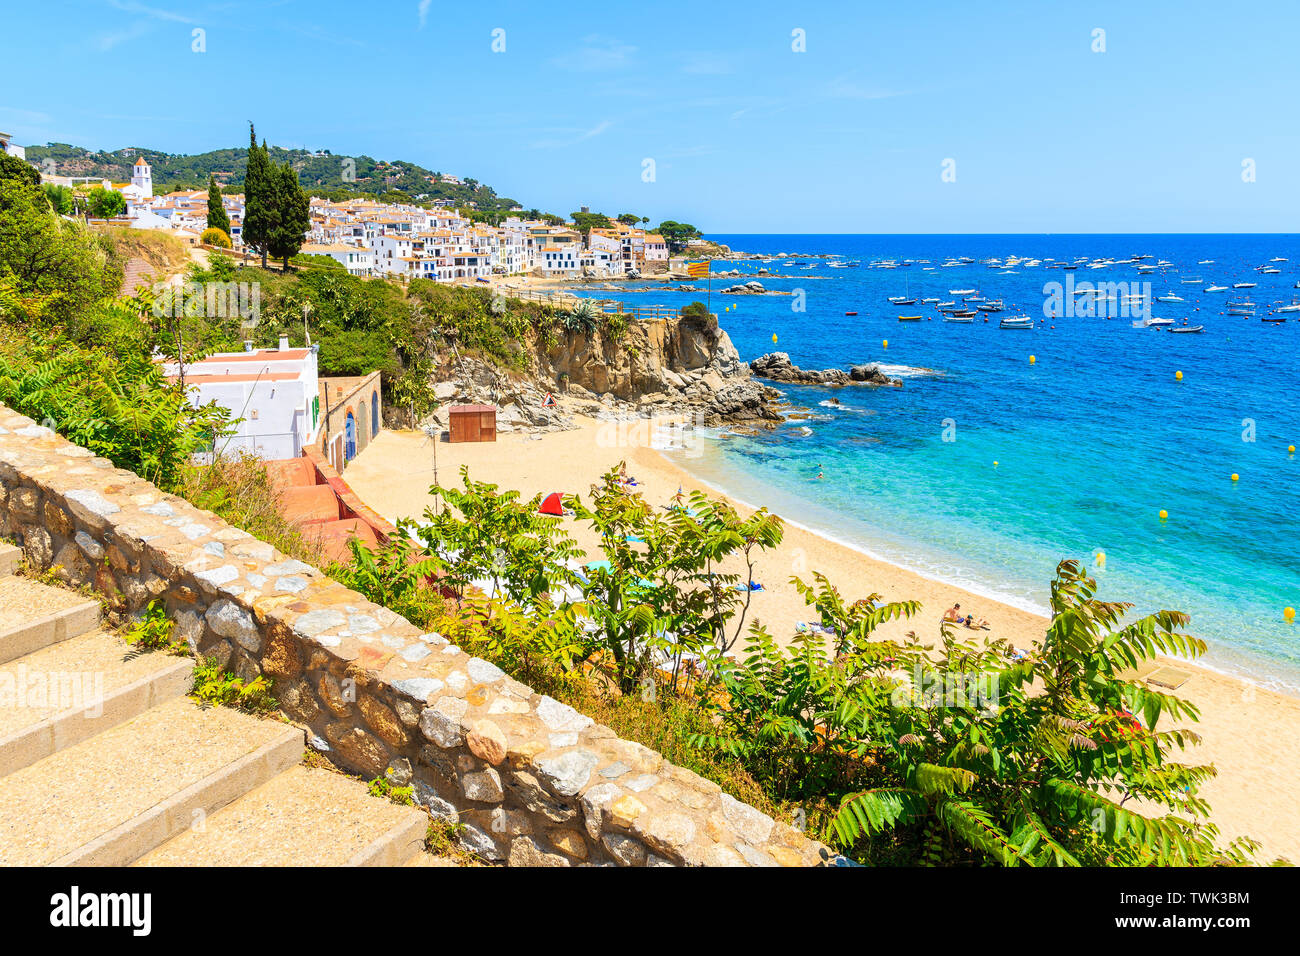 Steps to beach in Calella de Palafrugell, scenic fishing village with white houses and sandy beach with clear blue water, Costa Brava, Catalonia, Spai Stock Photo